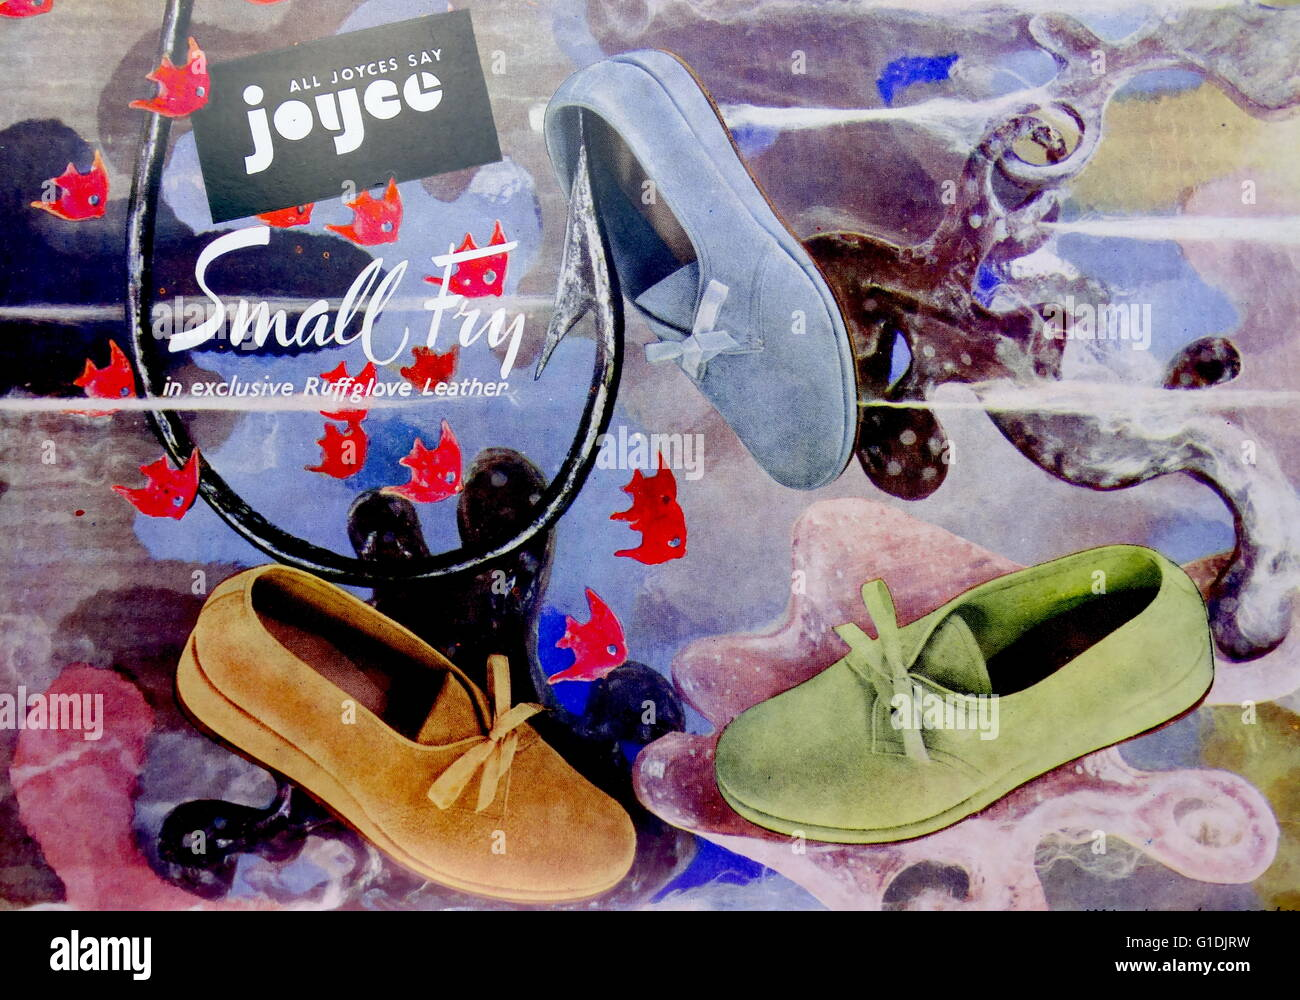 Advert for Joyce exclusive Ruff Leather Shoes - Stock Image